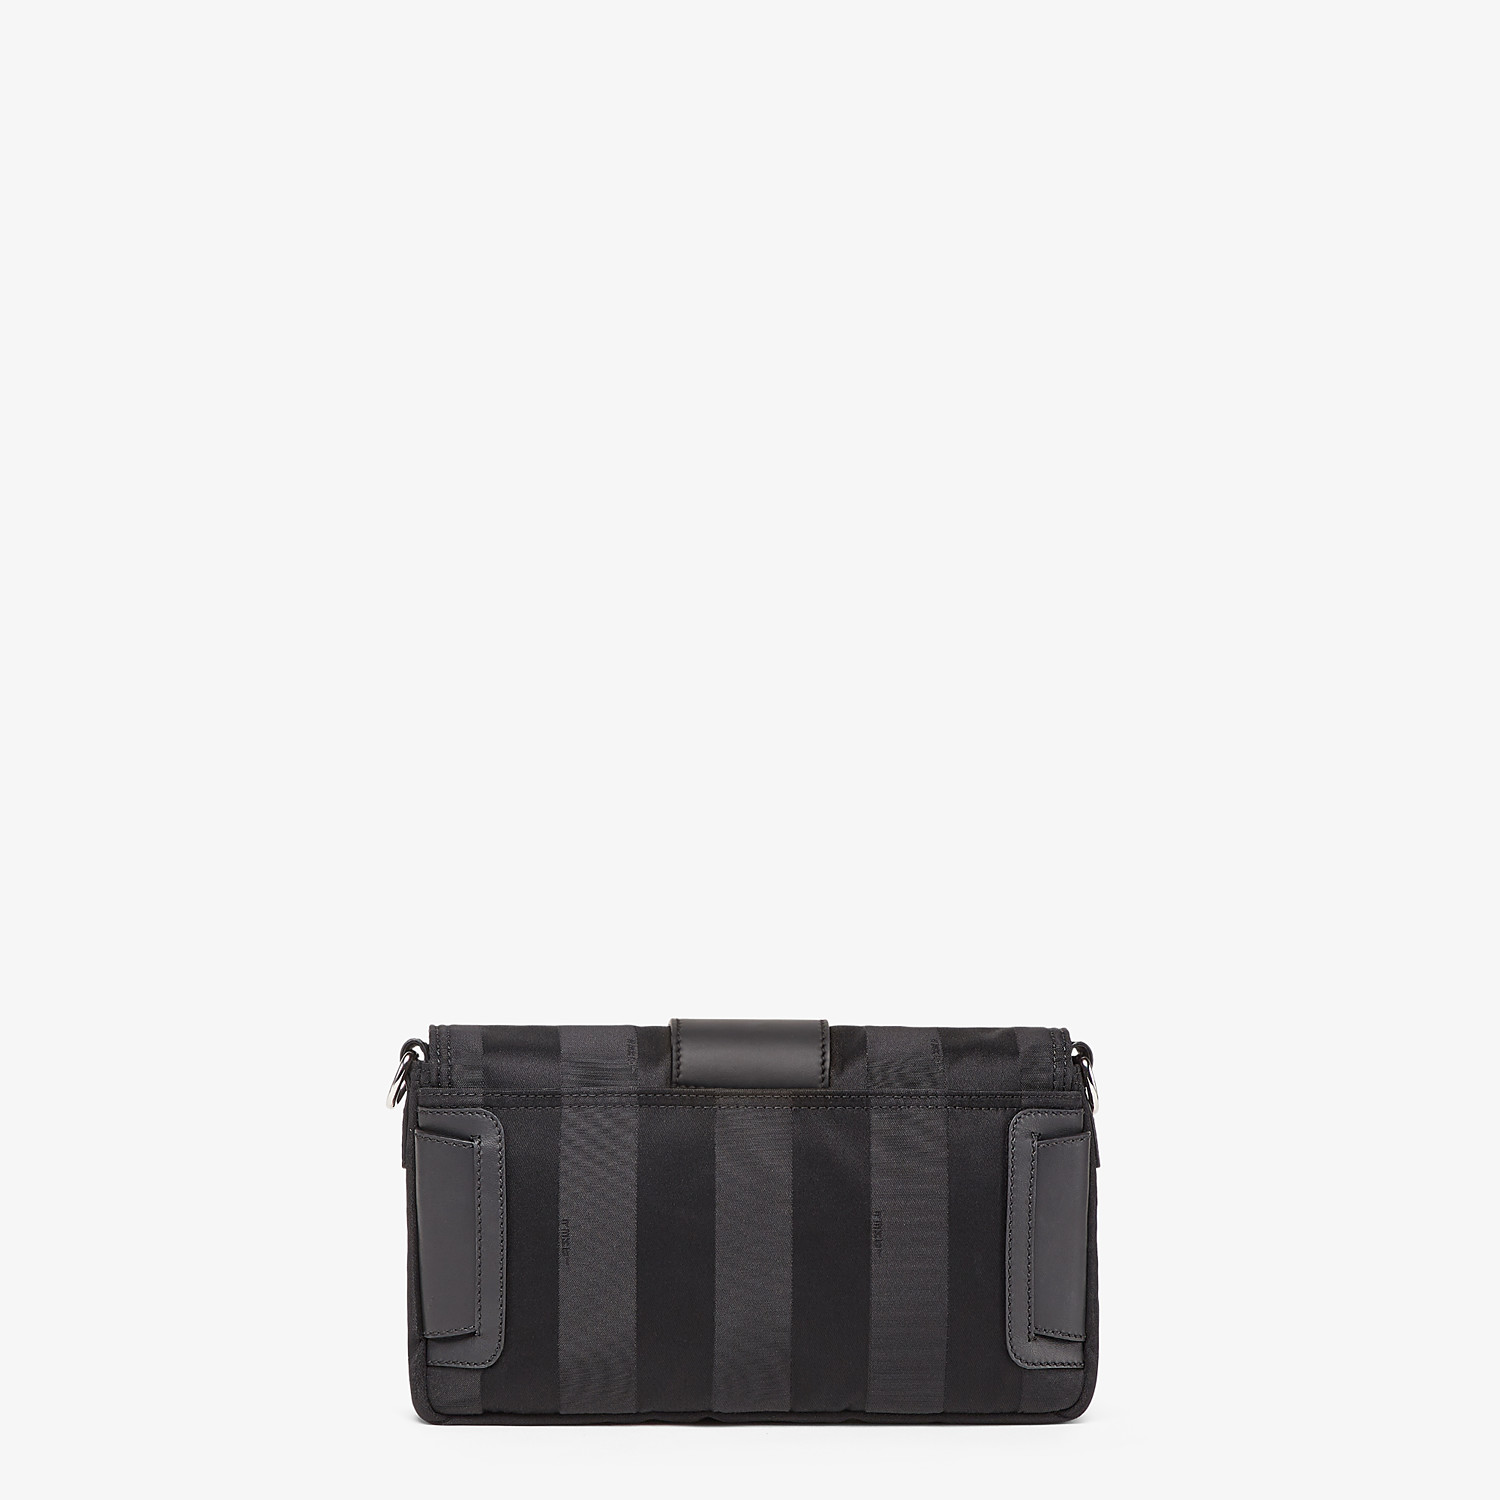 FENDI BAGUETTE - Black nylon bag - view 4 detail